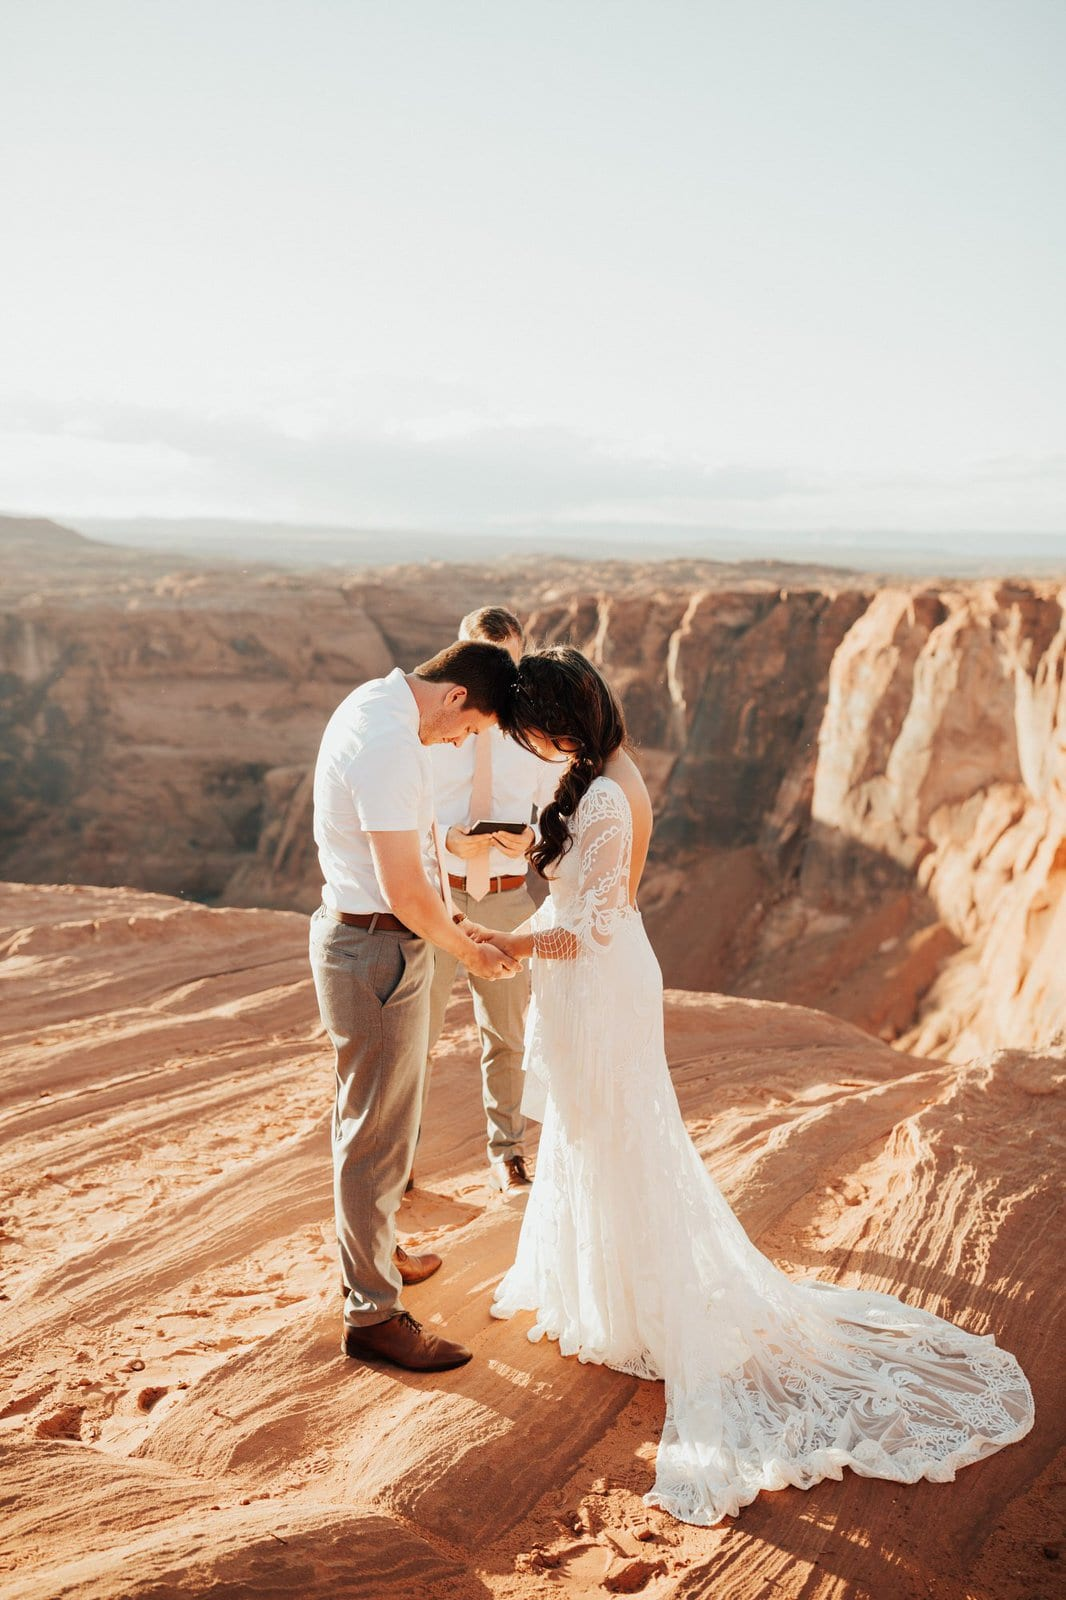 Intimate elopement at Horseshoe Bend.